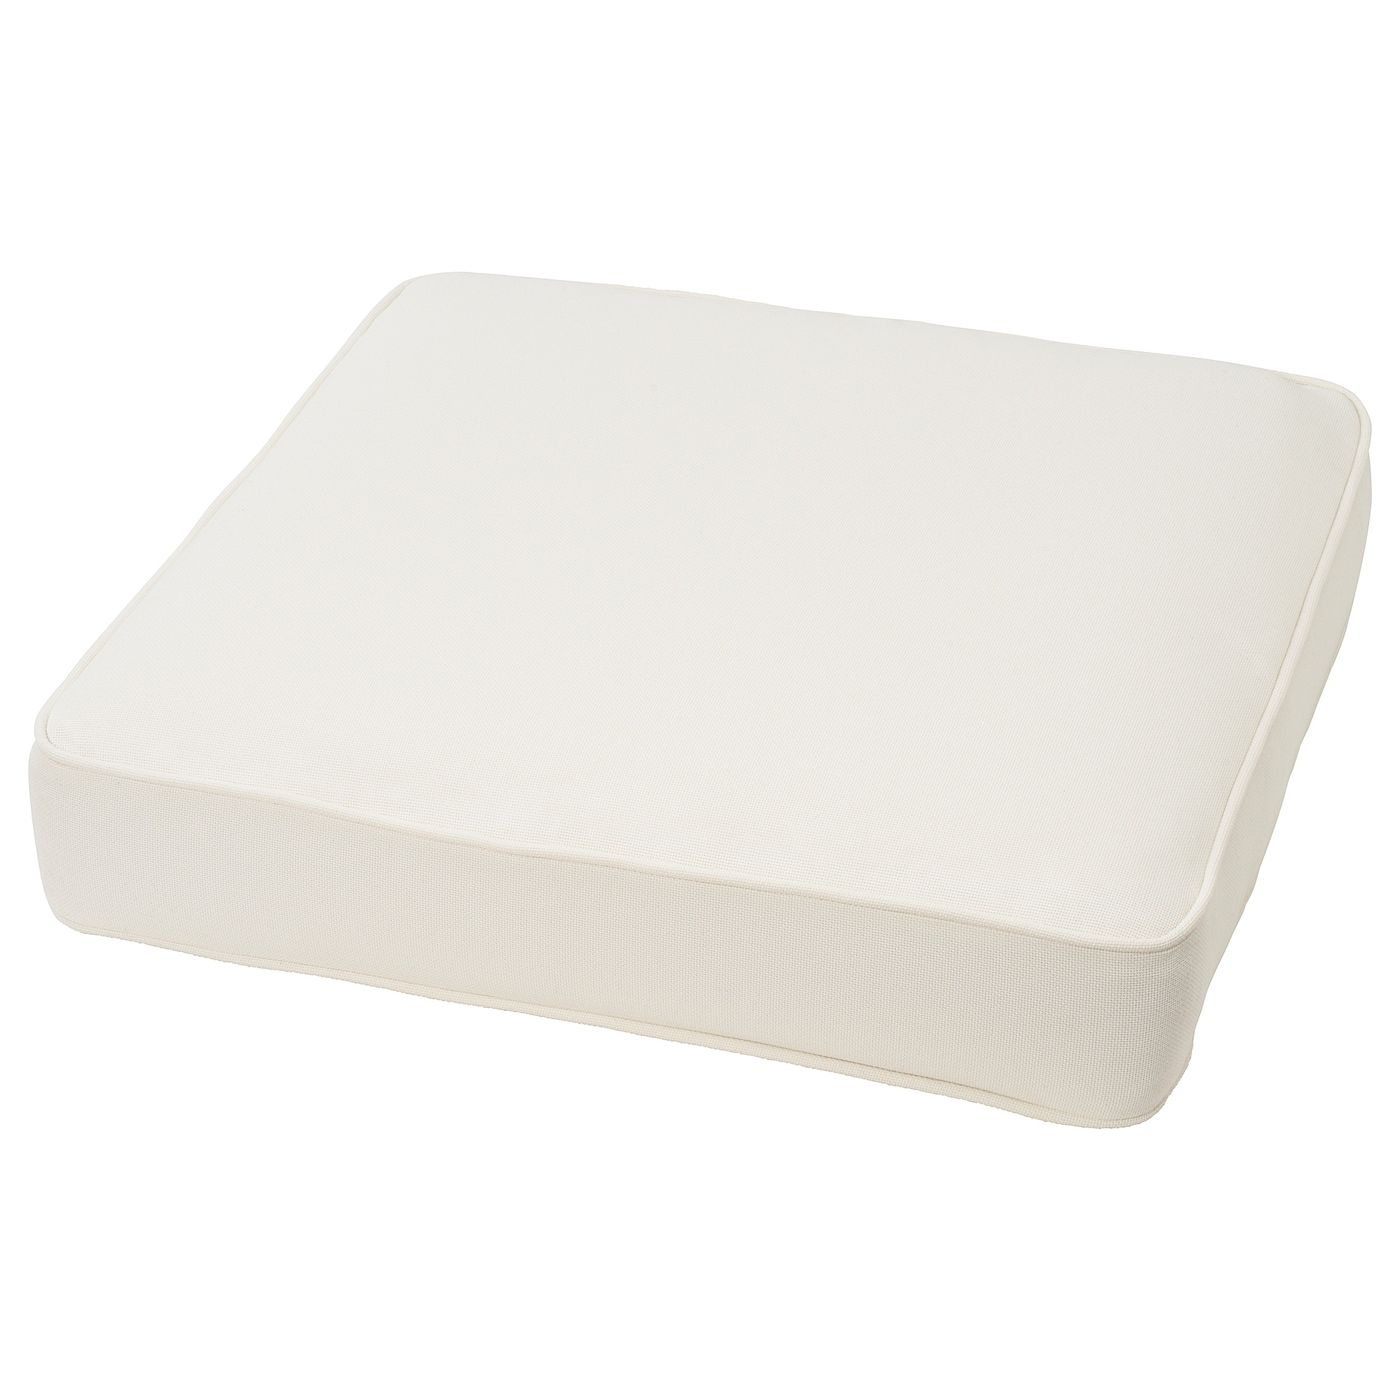 Ikea Jarpon Cover For Seat Pad Outdoor White In 2020 Seat Pads